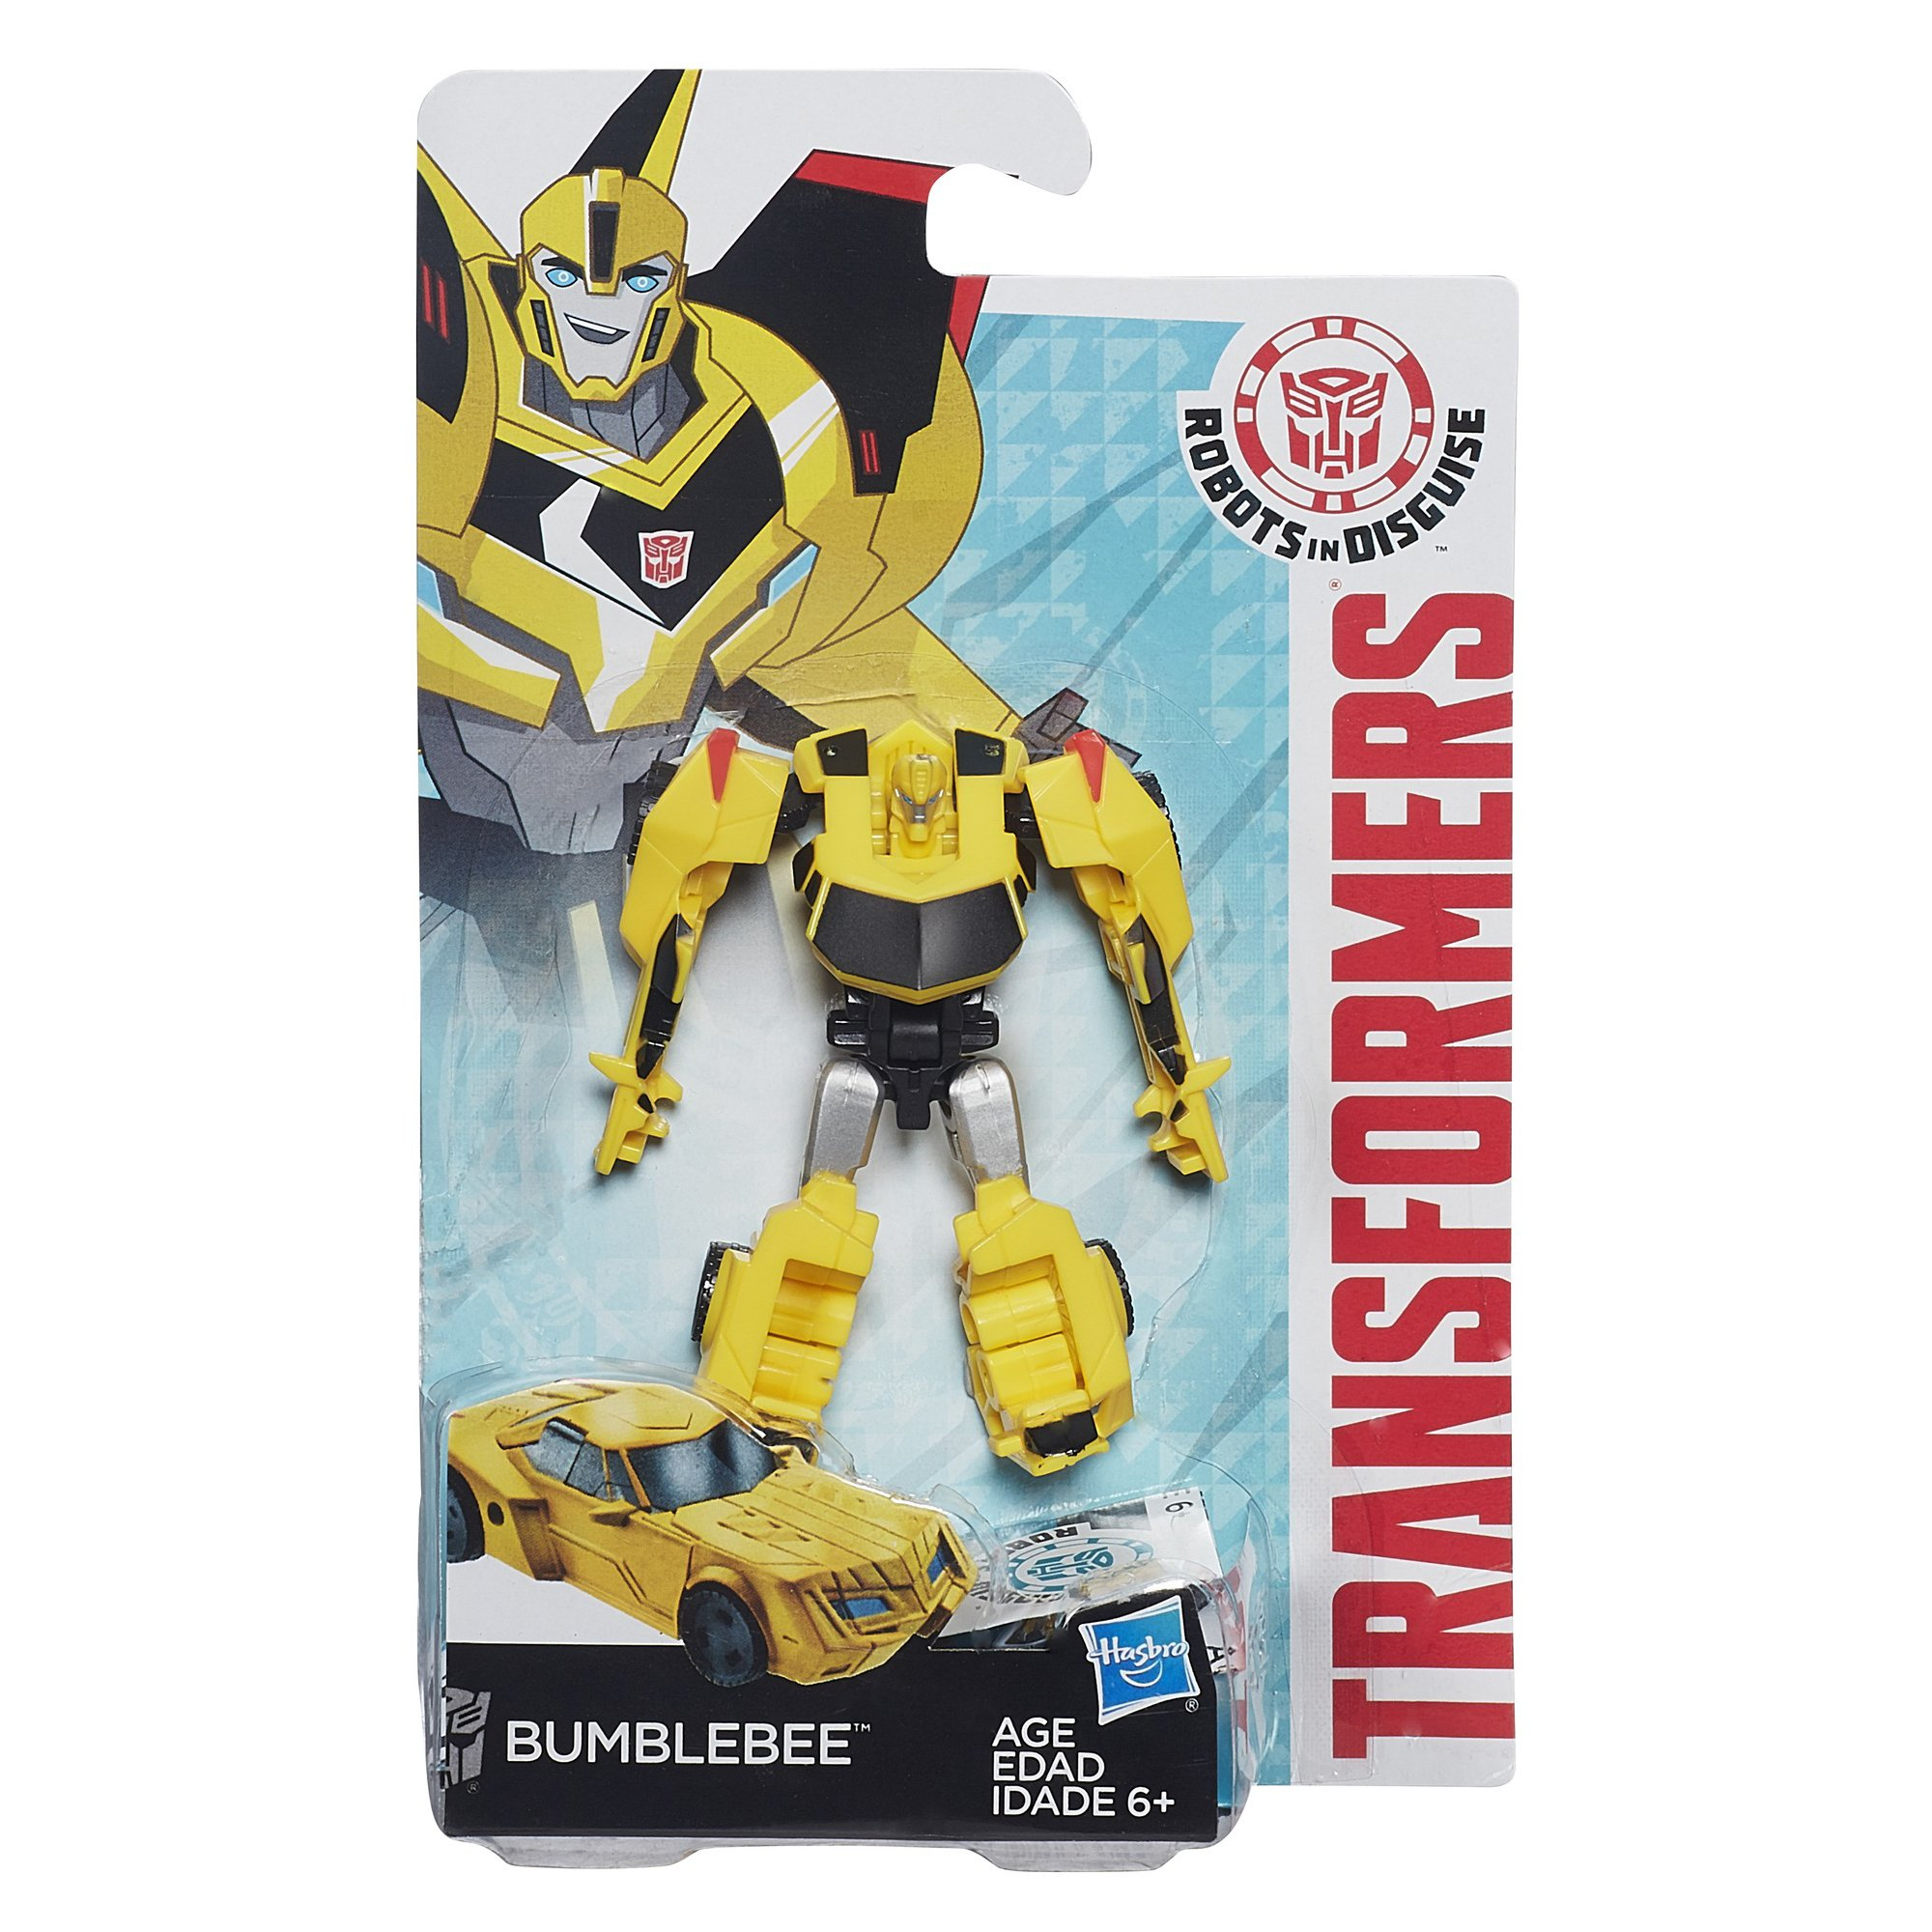 Transformers Robots in Disguise Legion Class Bumblebee Figure by Transformers (Image #2)